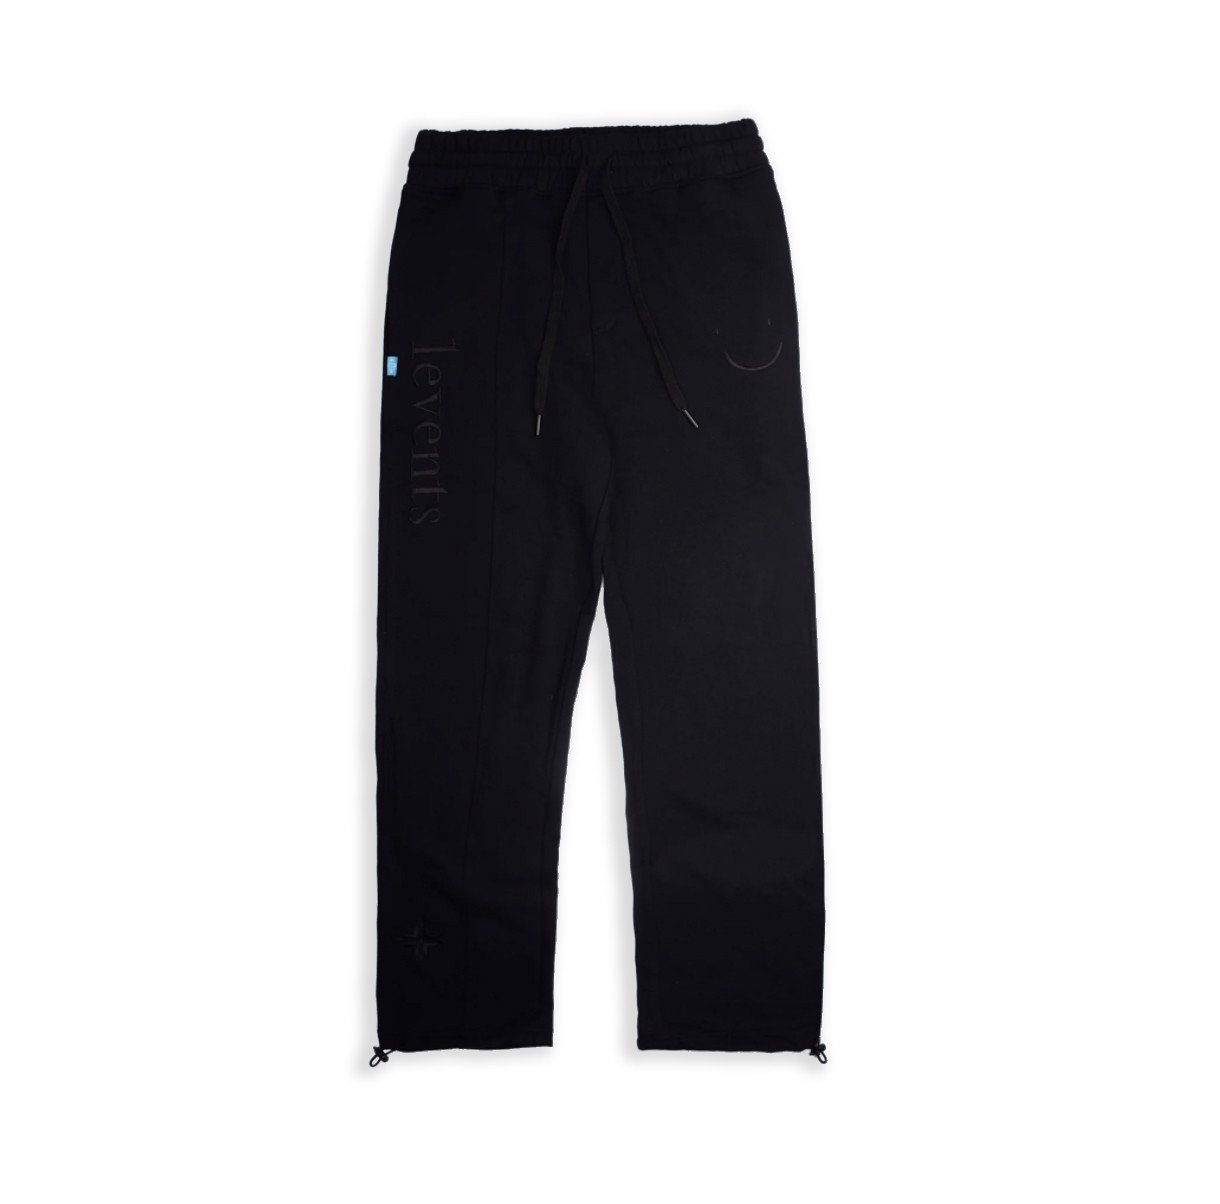 LVS CAYA SWEATPANTS/ BLACK